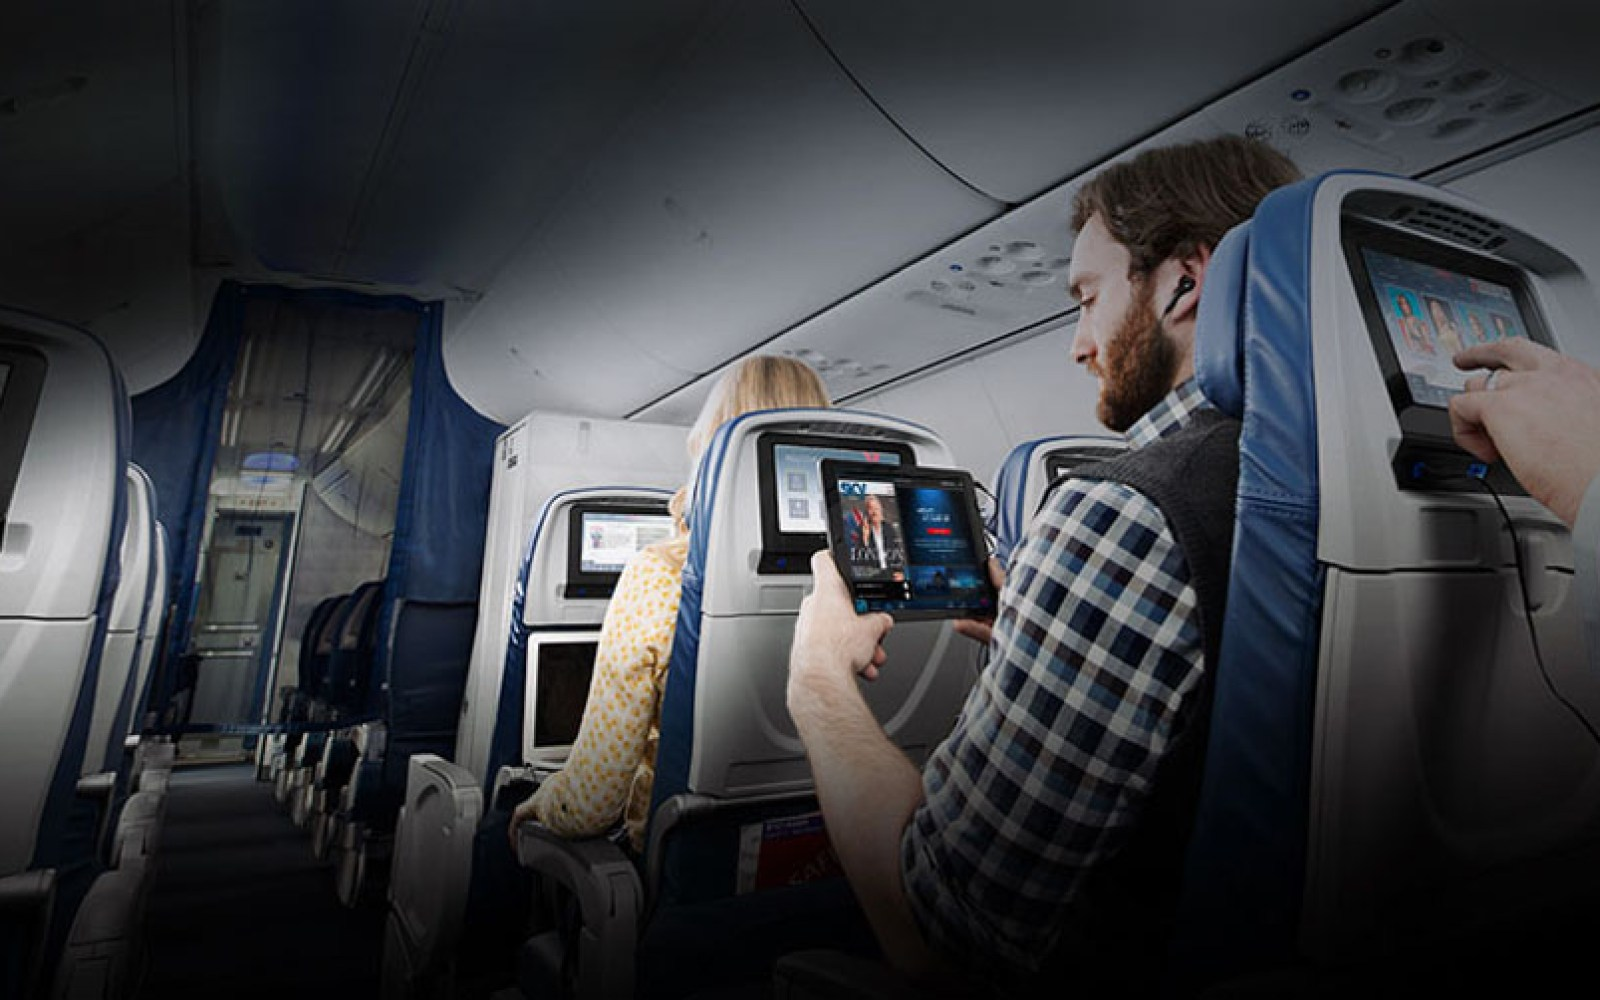 Delta's iPad app now allows passengers to stream movies & TV shows during flights